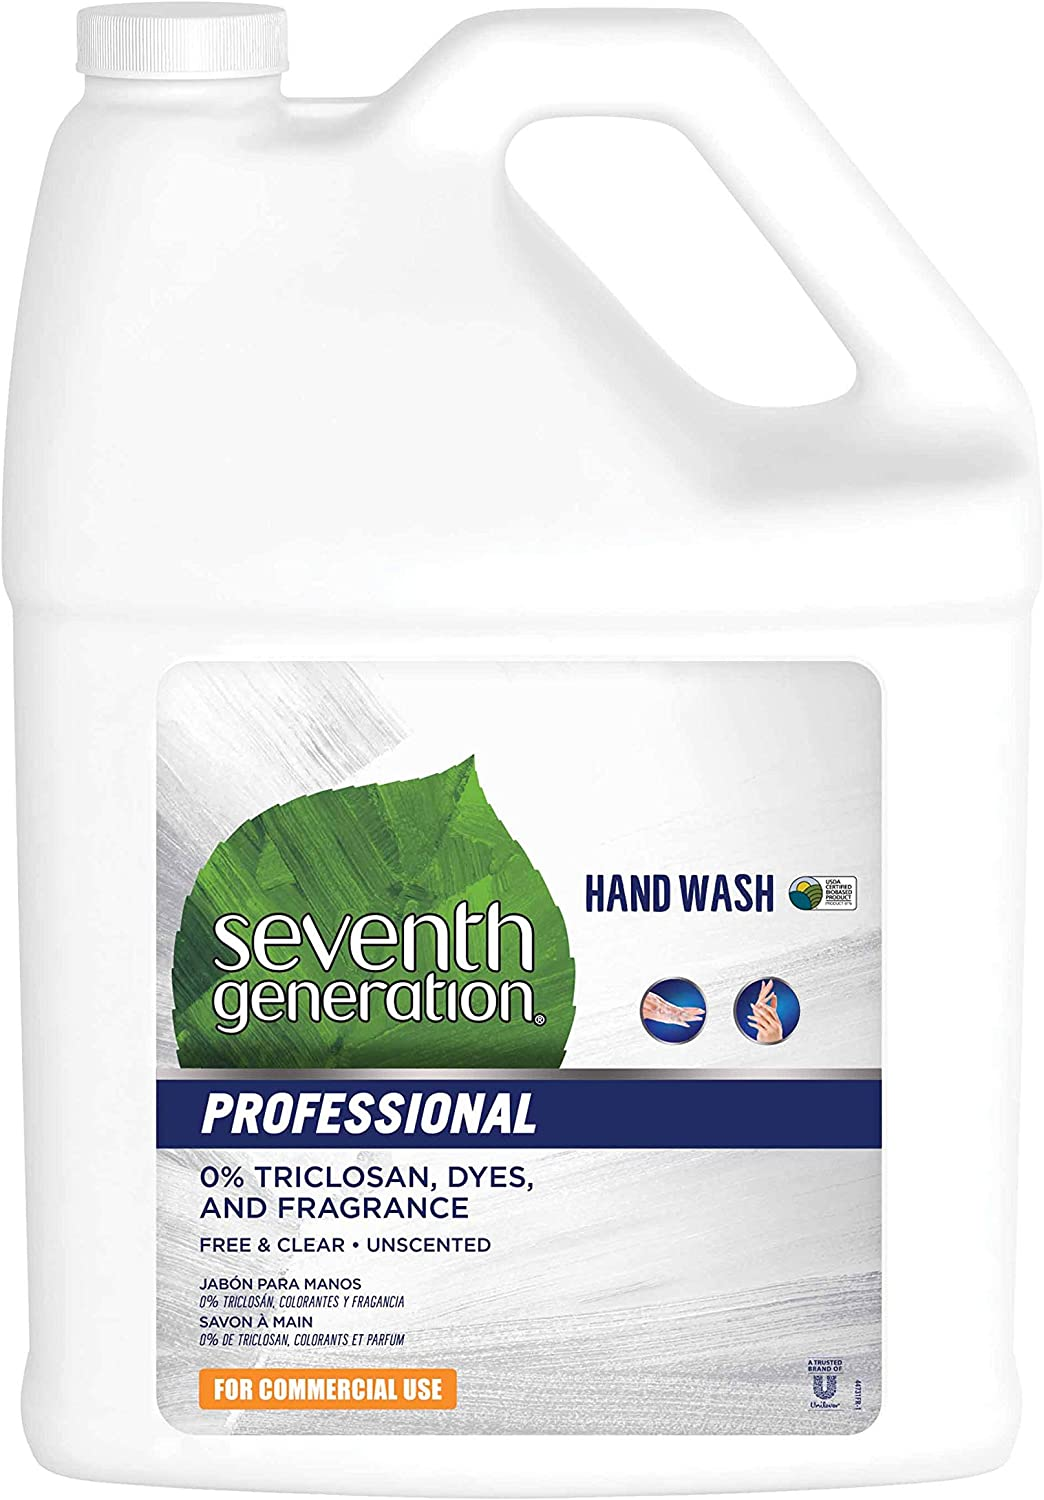 Seventh Generation Professional Liquid Hand Wash Soap Refill, Free & Clear, Unscented, 128 fl oz (Pack of 2)